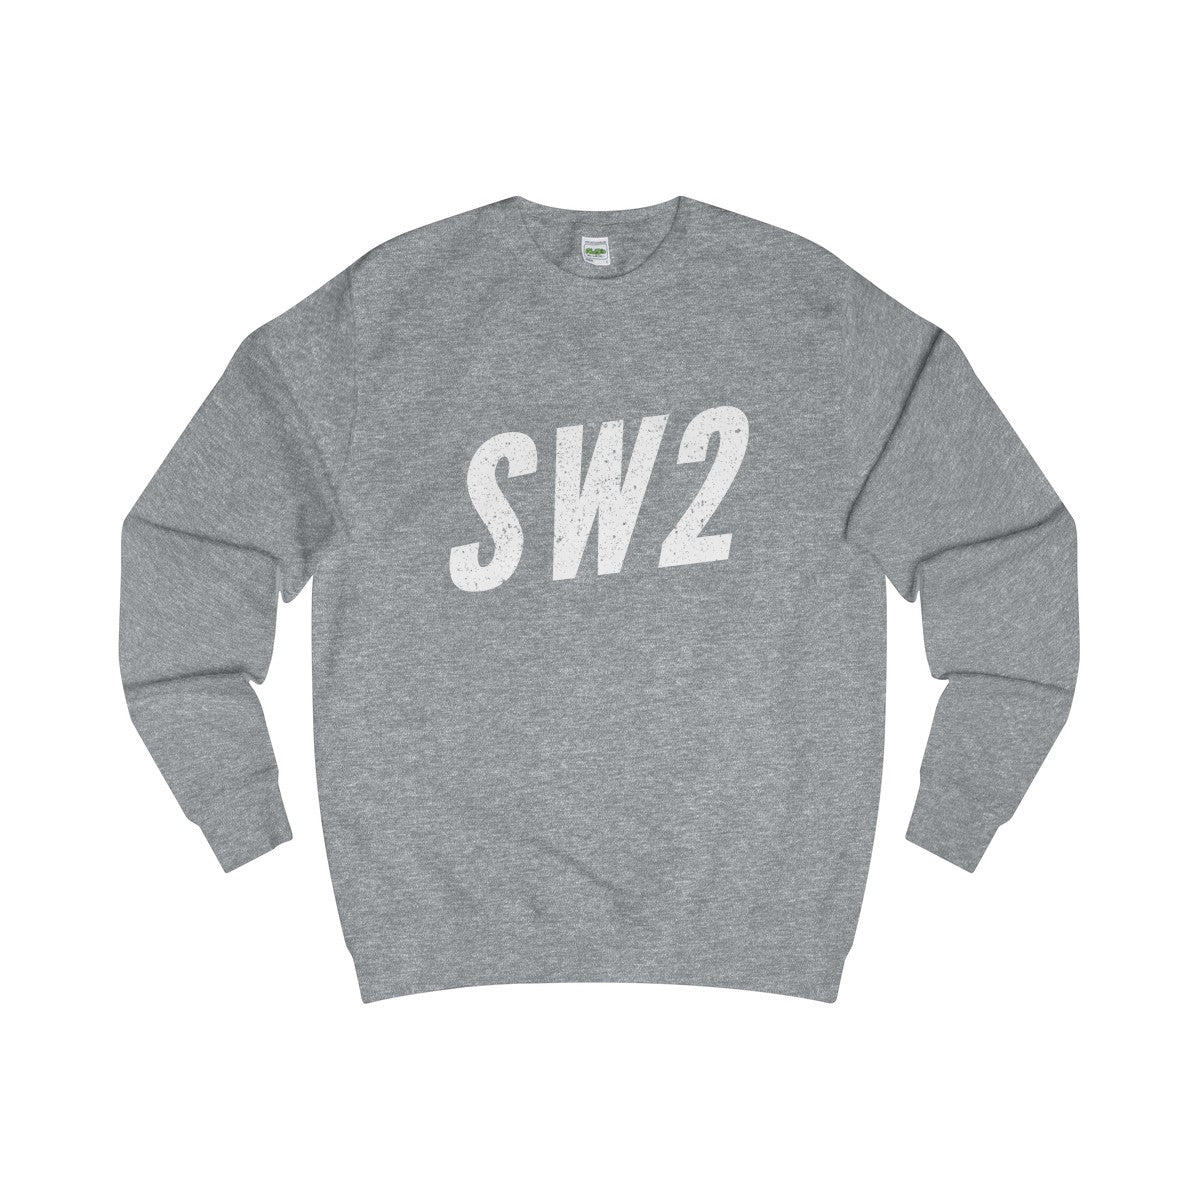 Brixton SW2 Sweater